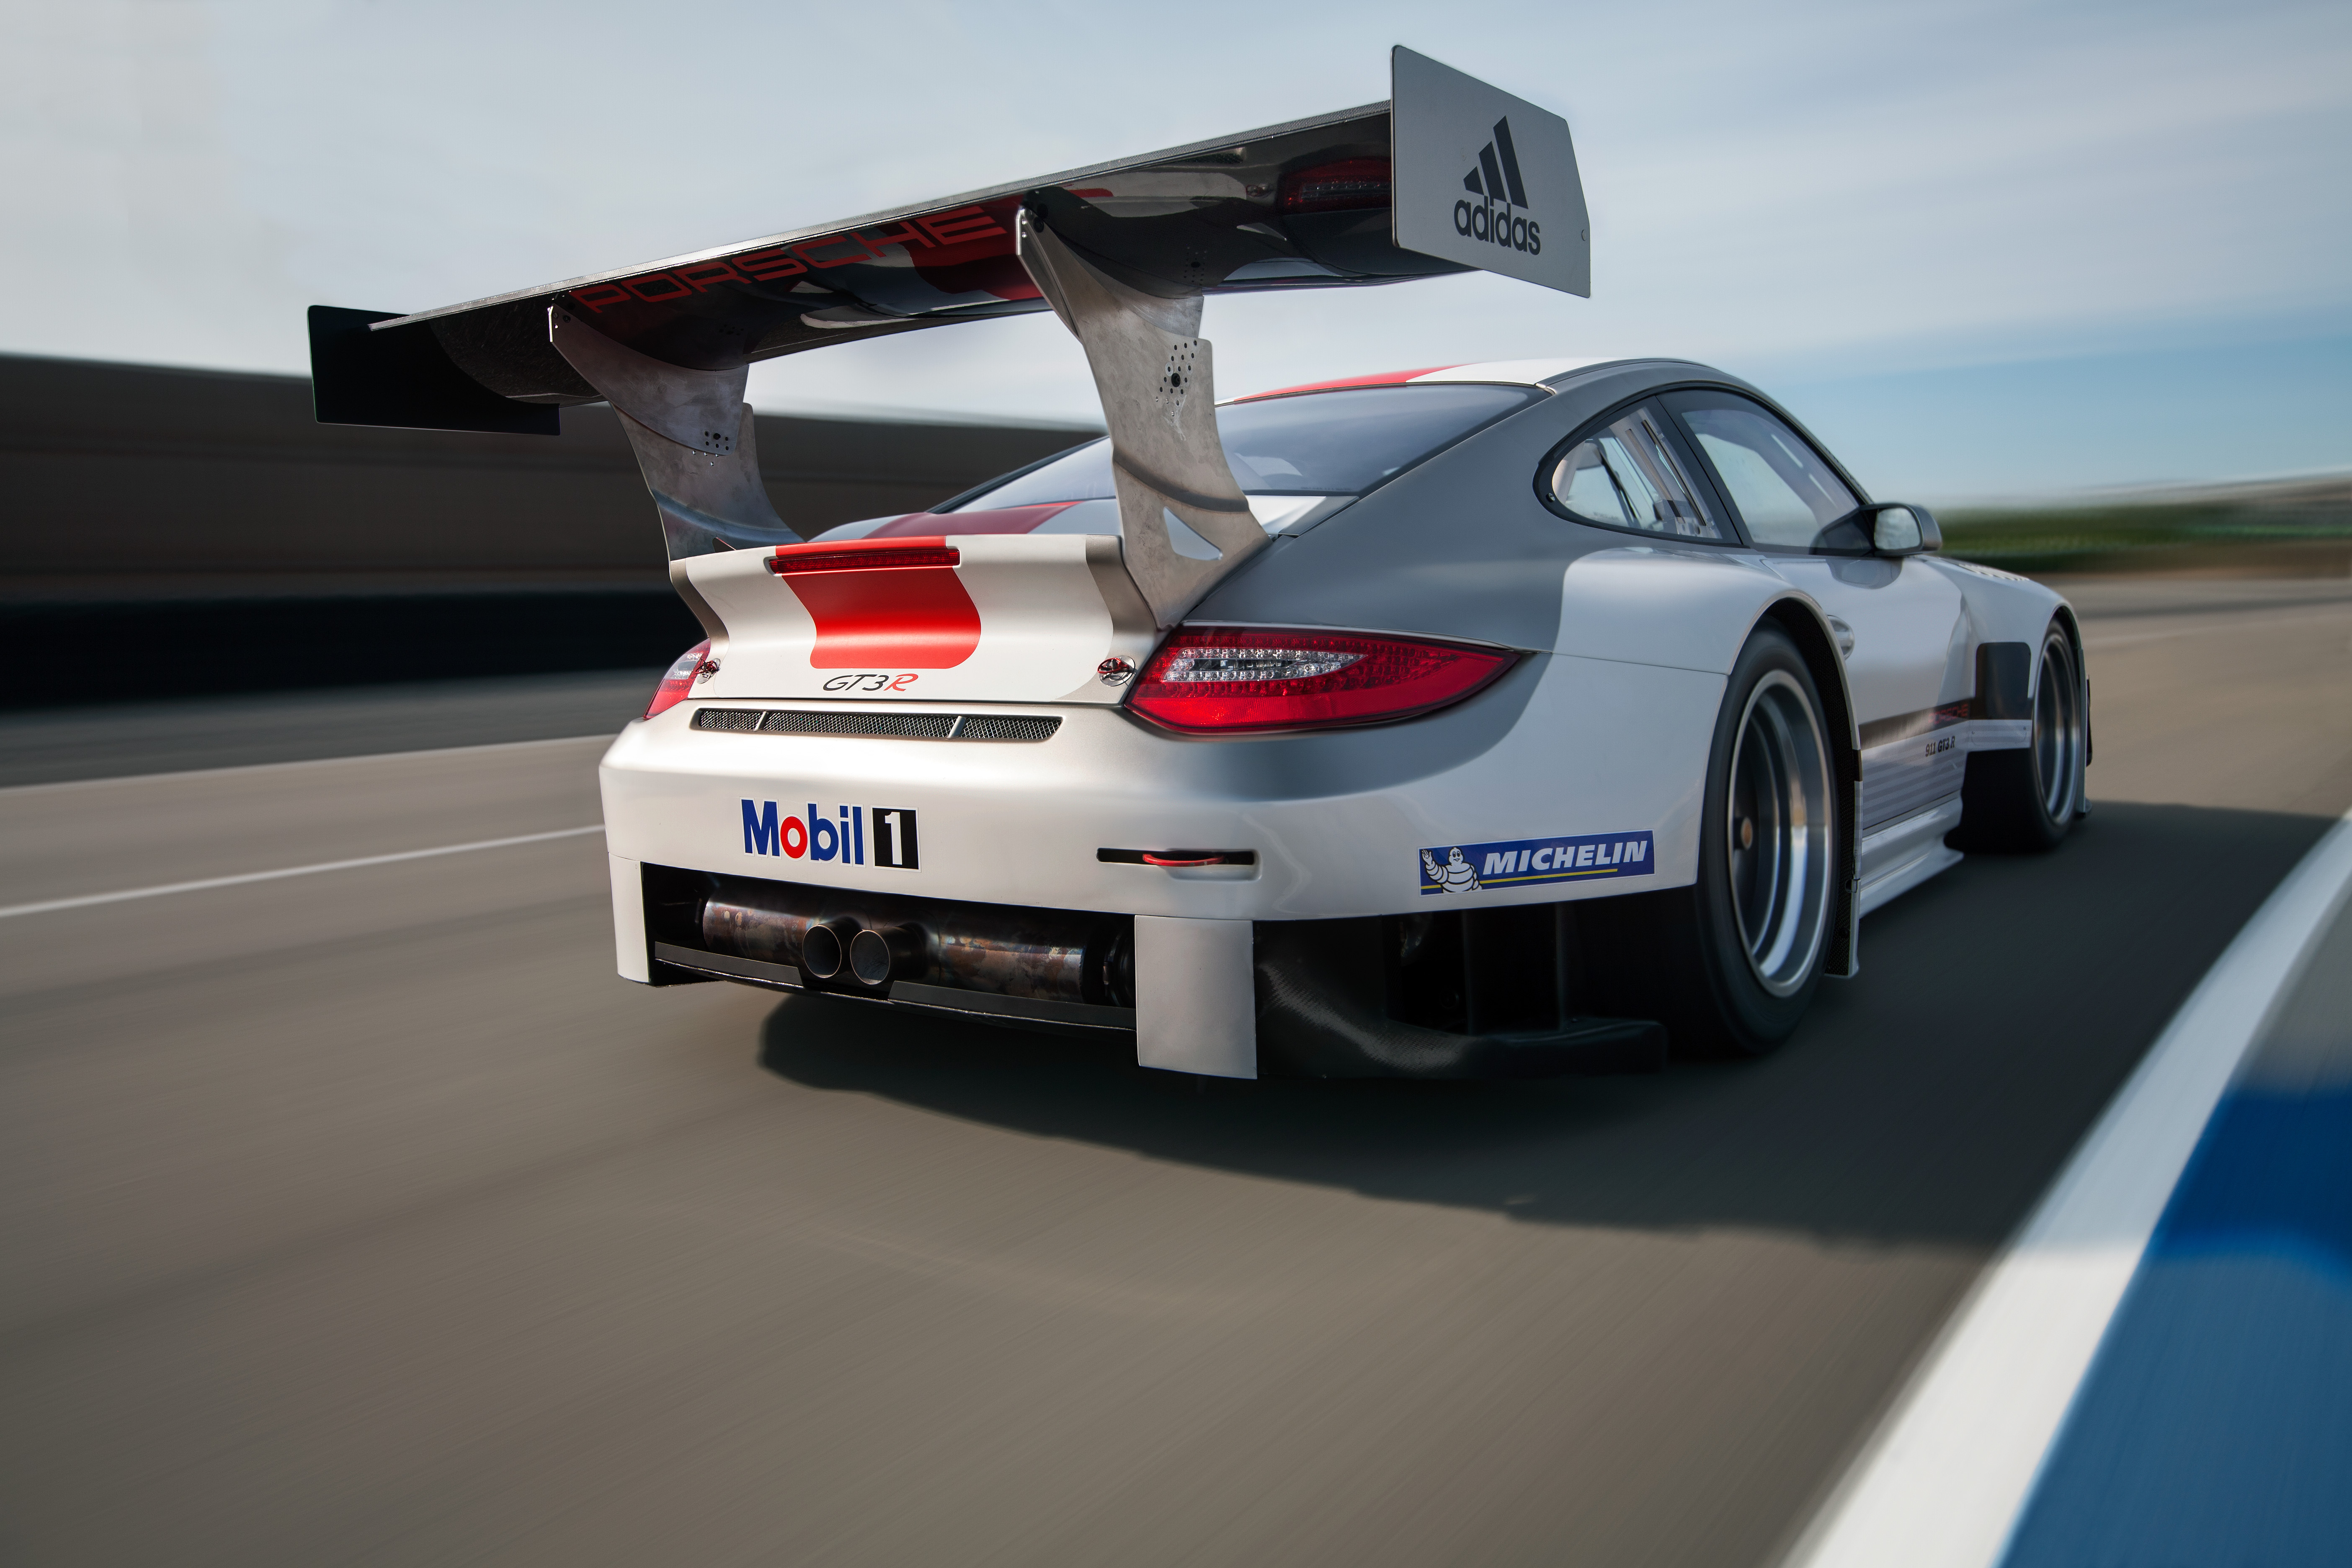 porsche 911 gt3 r extensive changes for the 2013 season porsche everyday dedeporsches blog. Black Bedroom Furniture Sets. Home Design Ideas